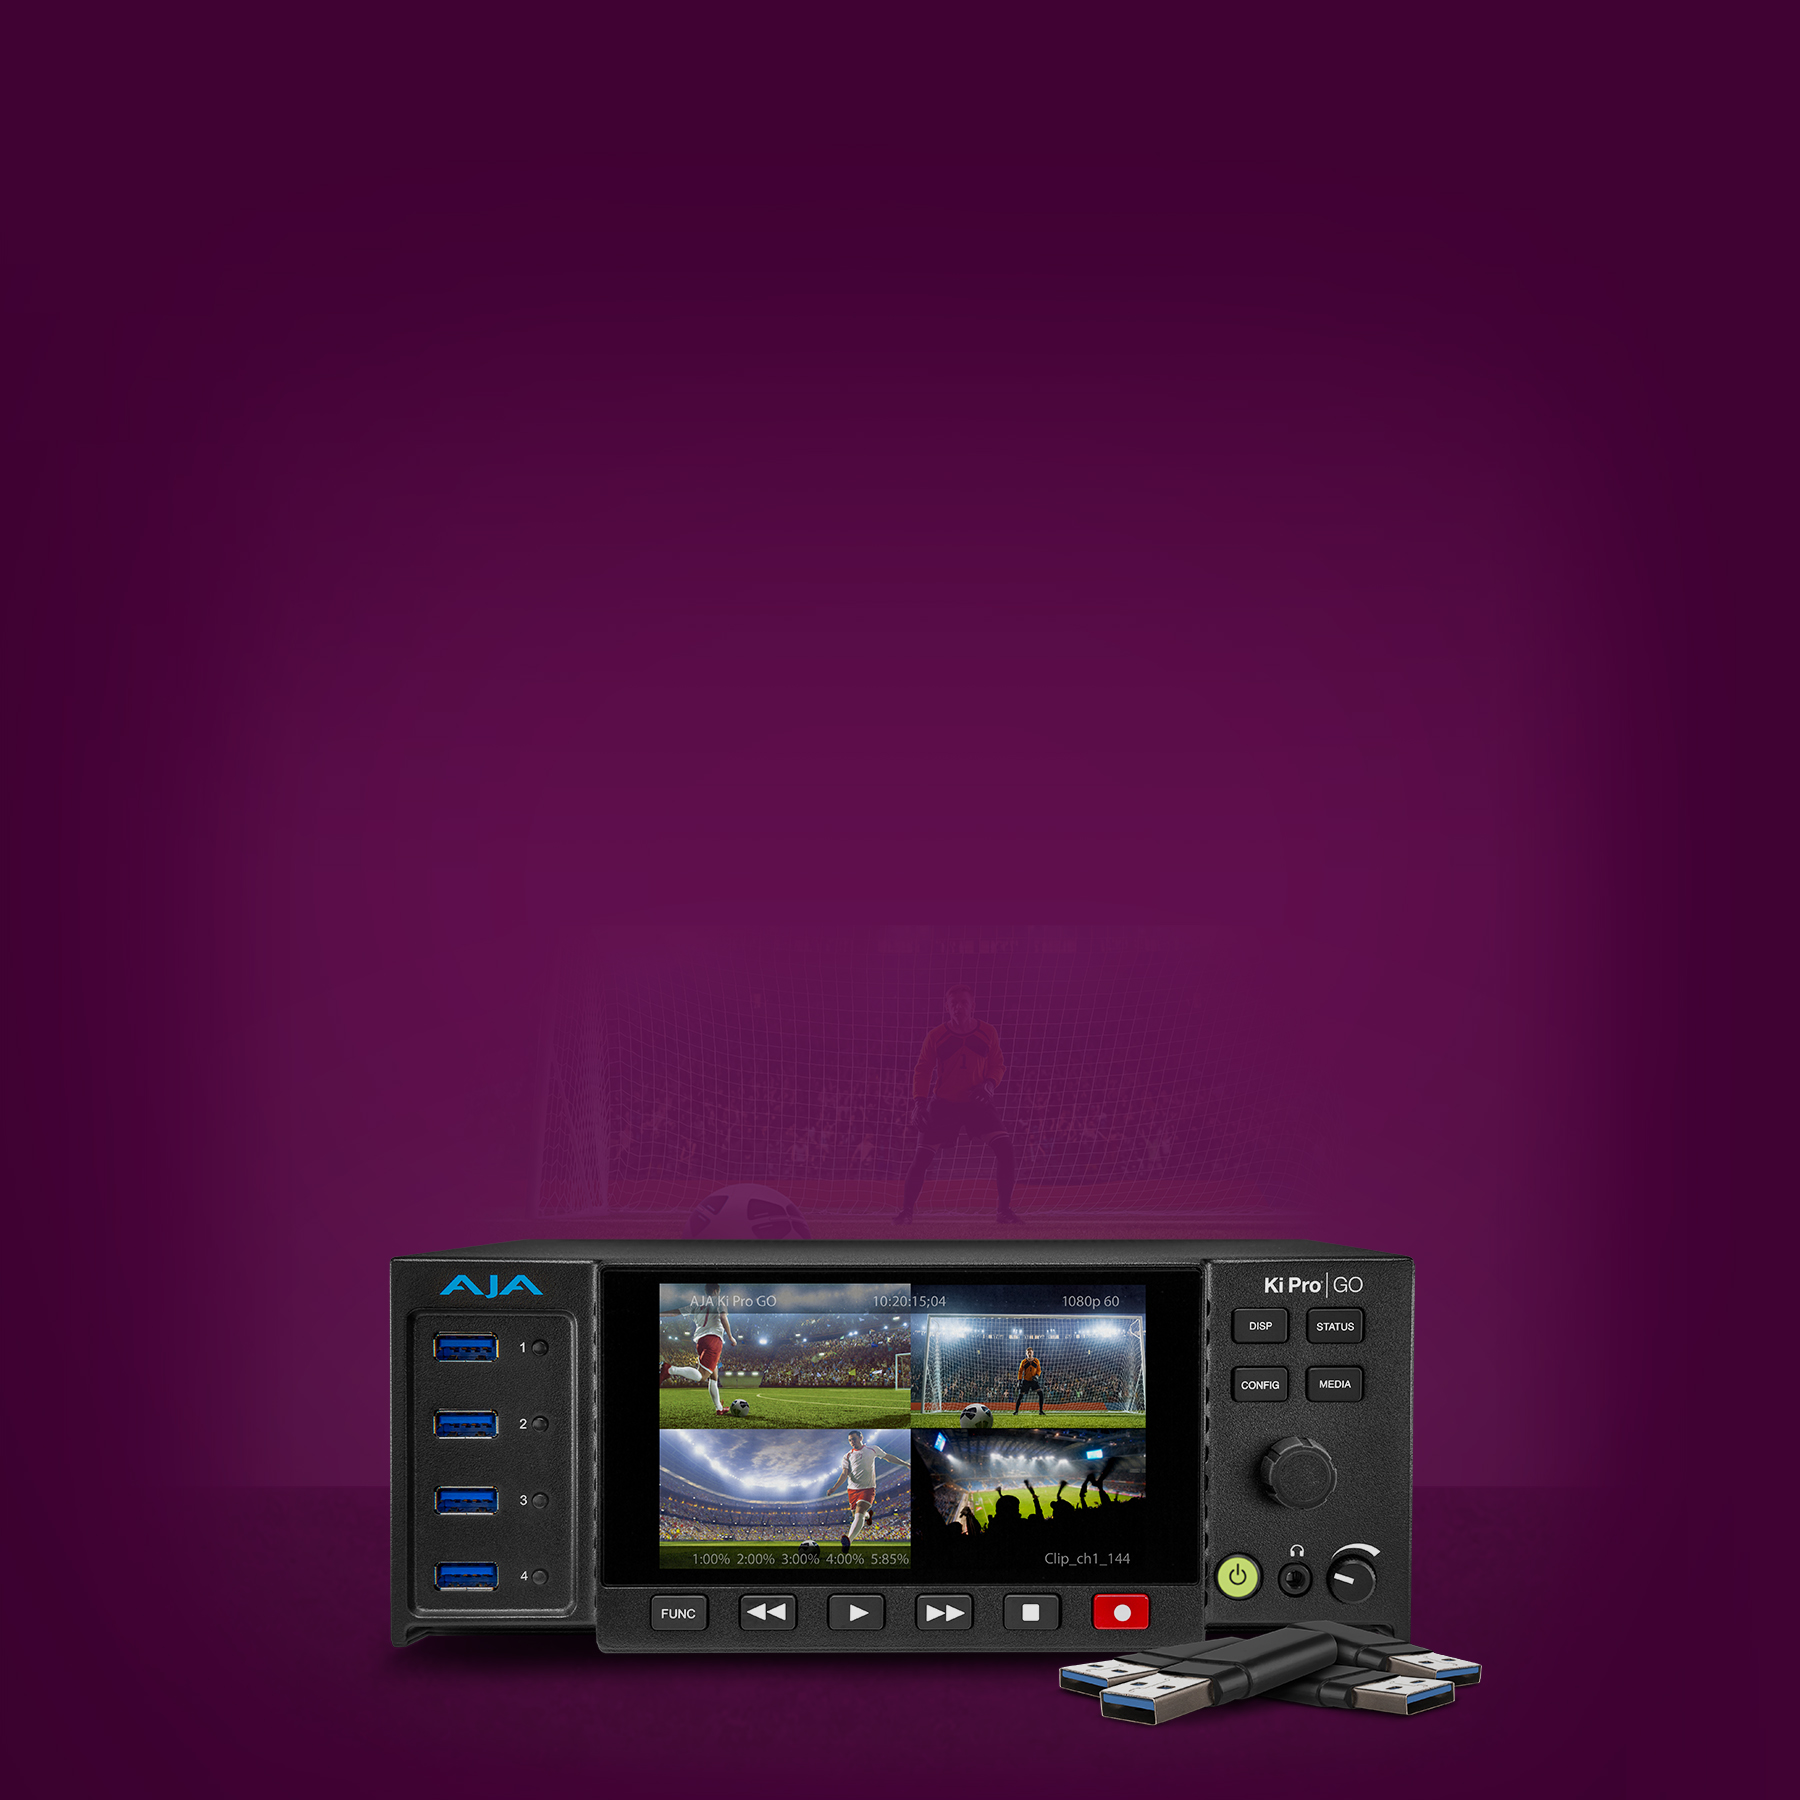 AJA Video Systems: Affordable Broadcast/Production/Post